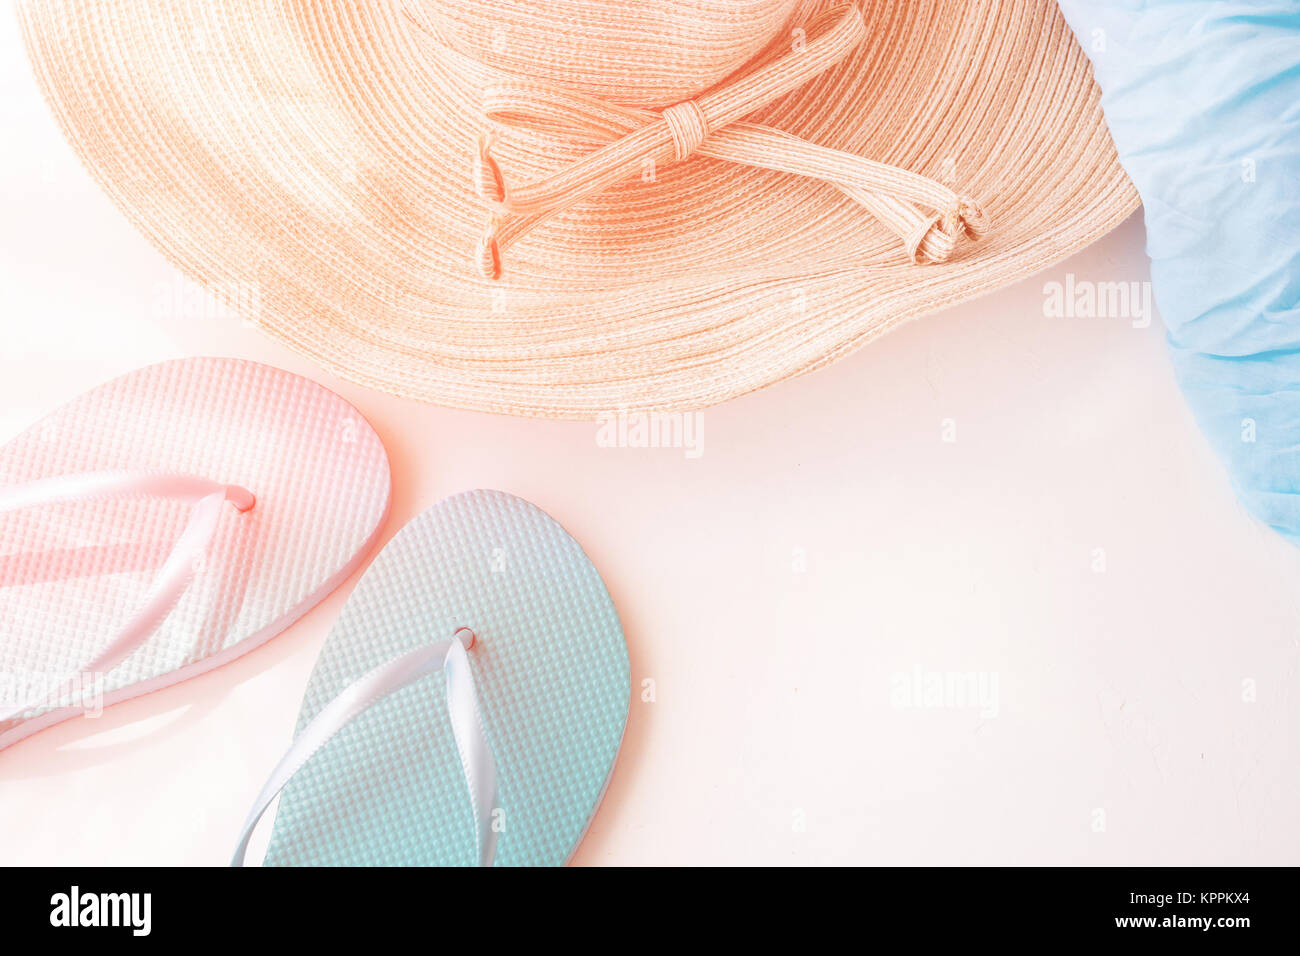 89a3ed2f3 Elegant Female Straw Hat Blue Slippers Beach Wrap on White Background  Golden Pink Flare Pastel Colors Summer Vacation Seaside Minimalist Style  Copy Sp